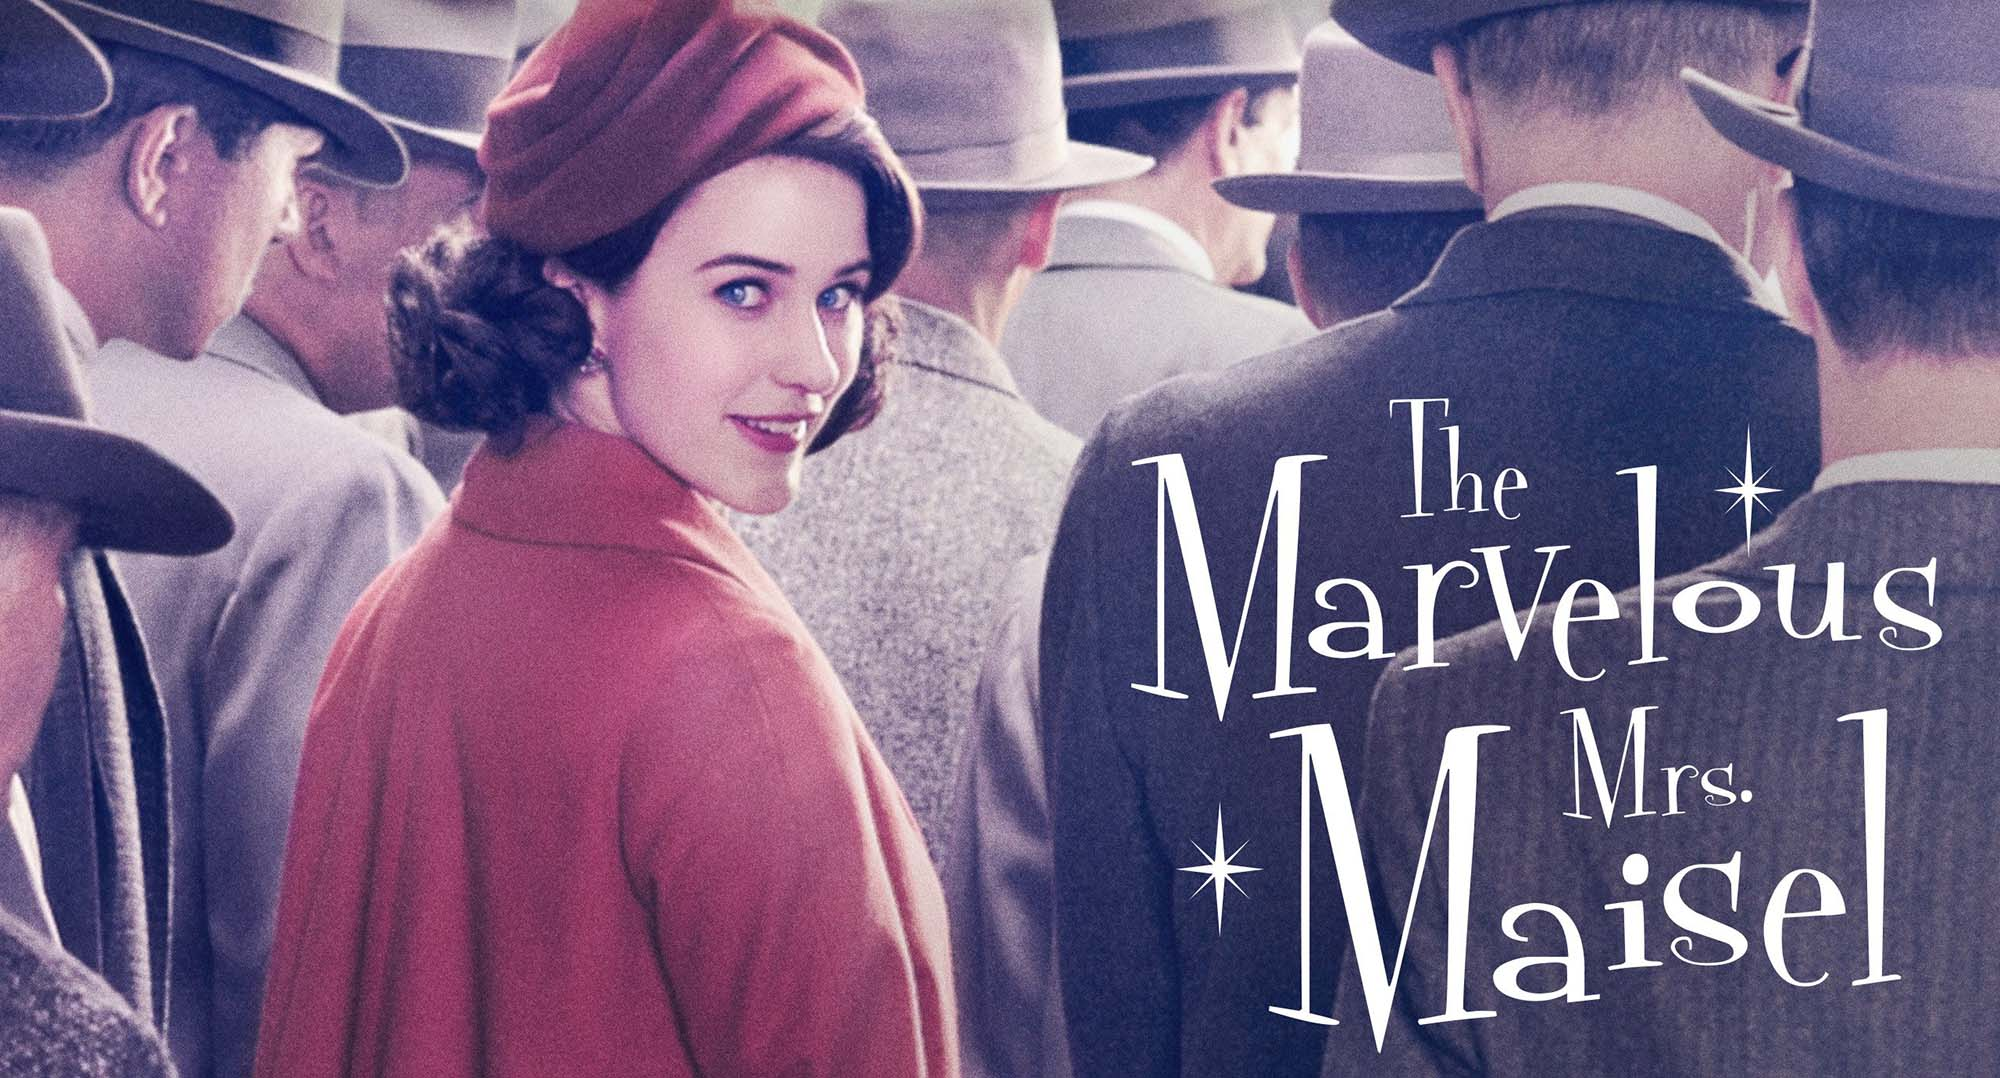 The Marvelous Mrs. Maisel Season 4 Trailer and Release Date